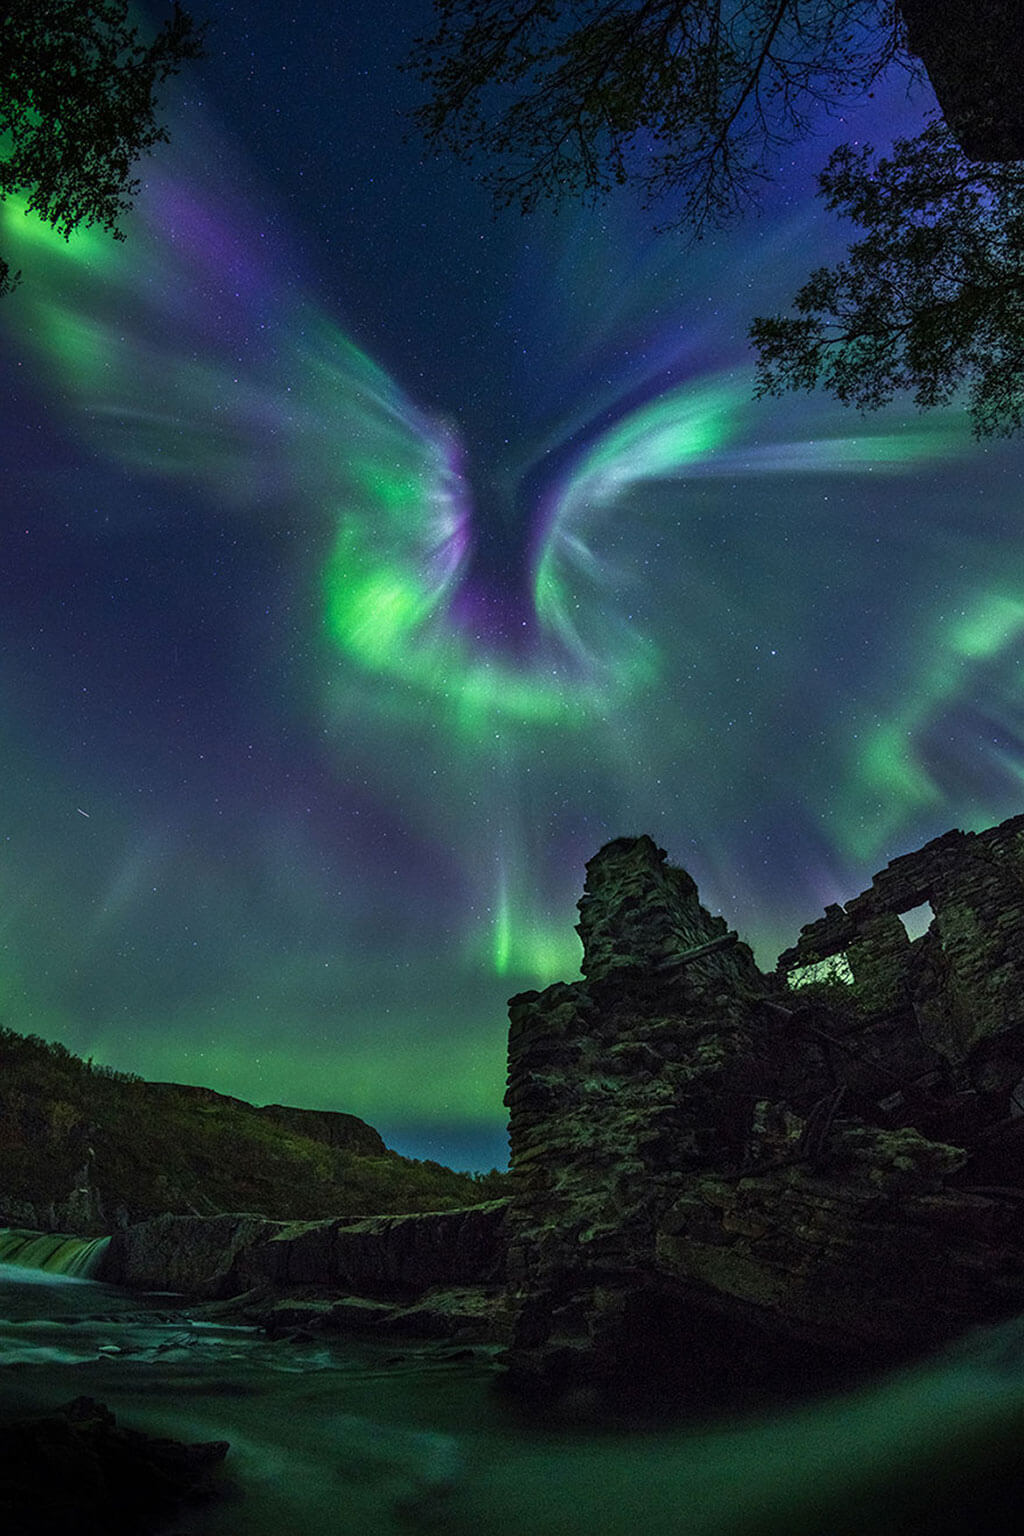 Astronomy Photographer of the Year competition